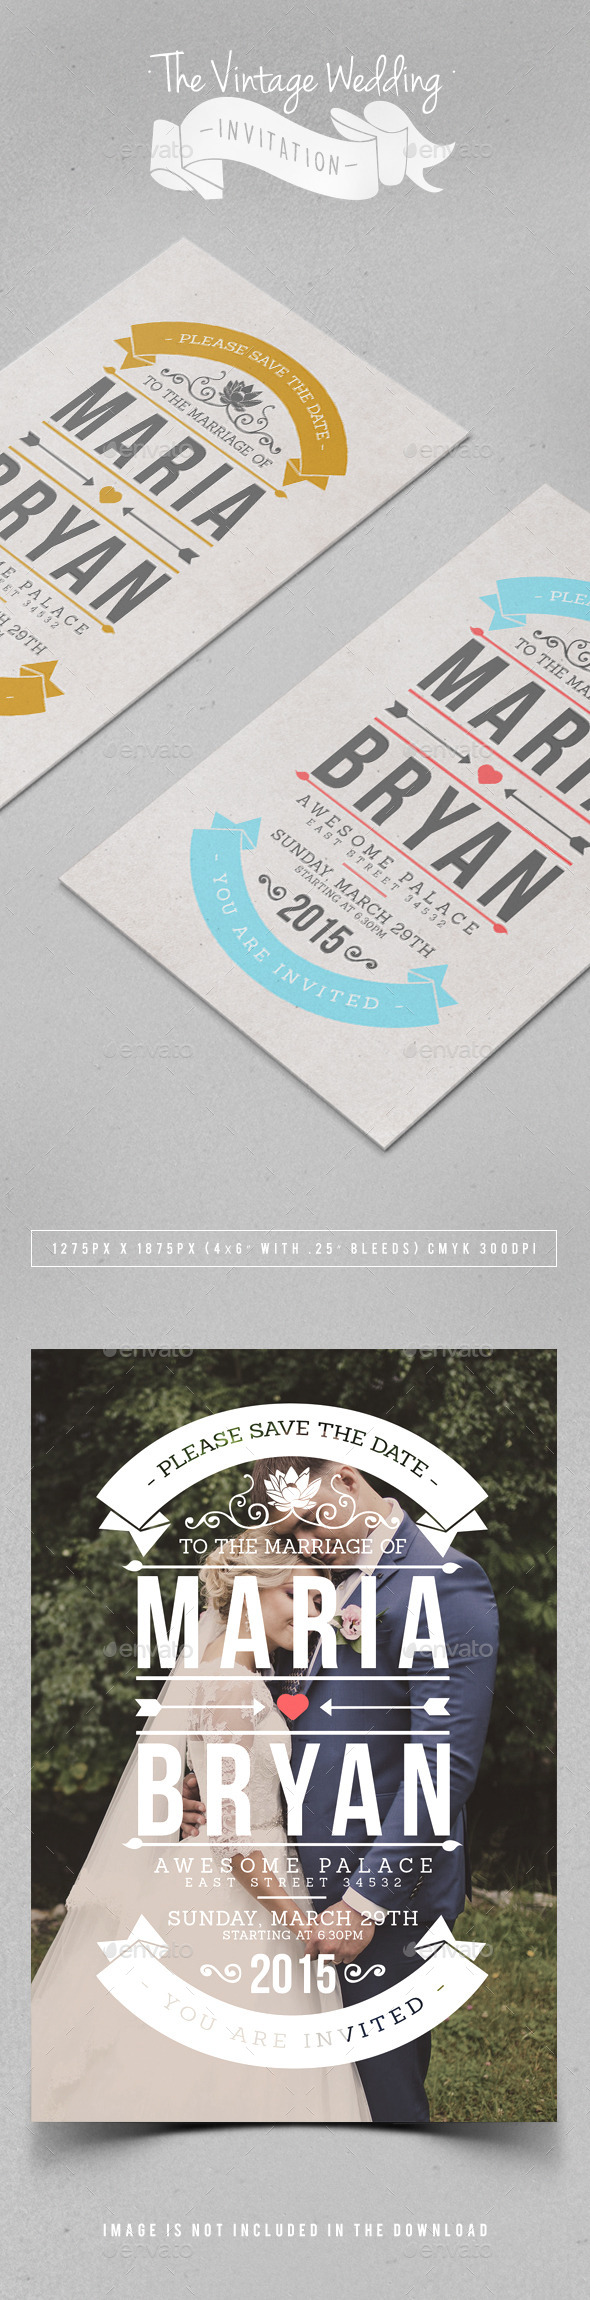 GraphicRiver The Vintage Wedding Invitation 11209789